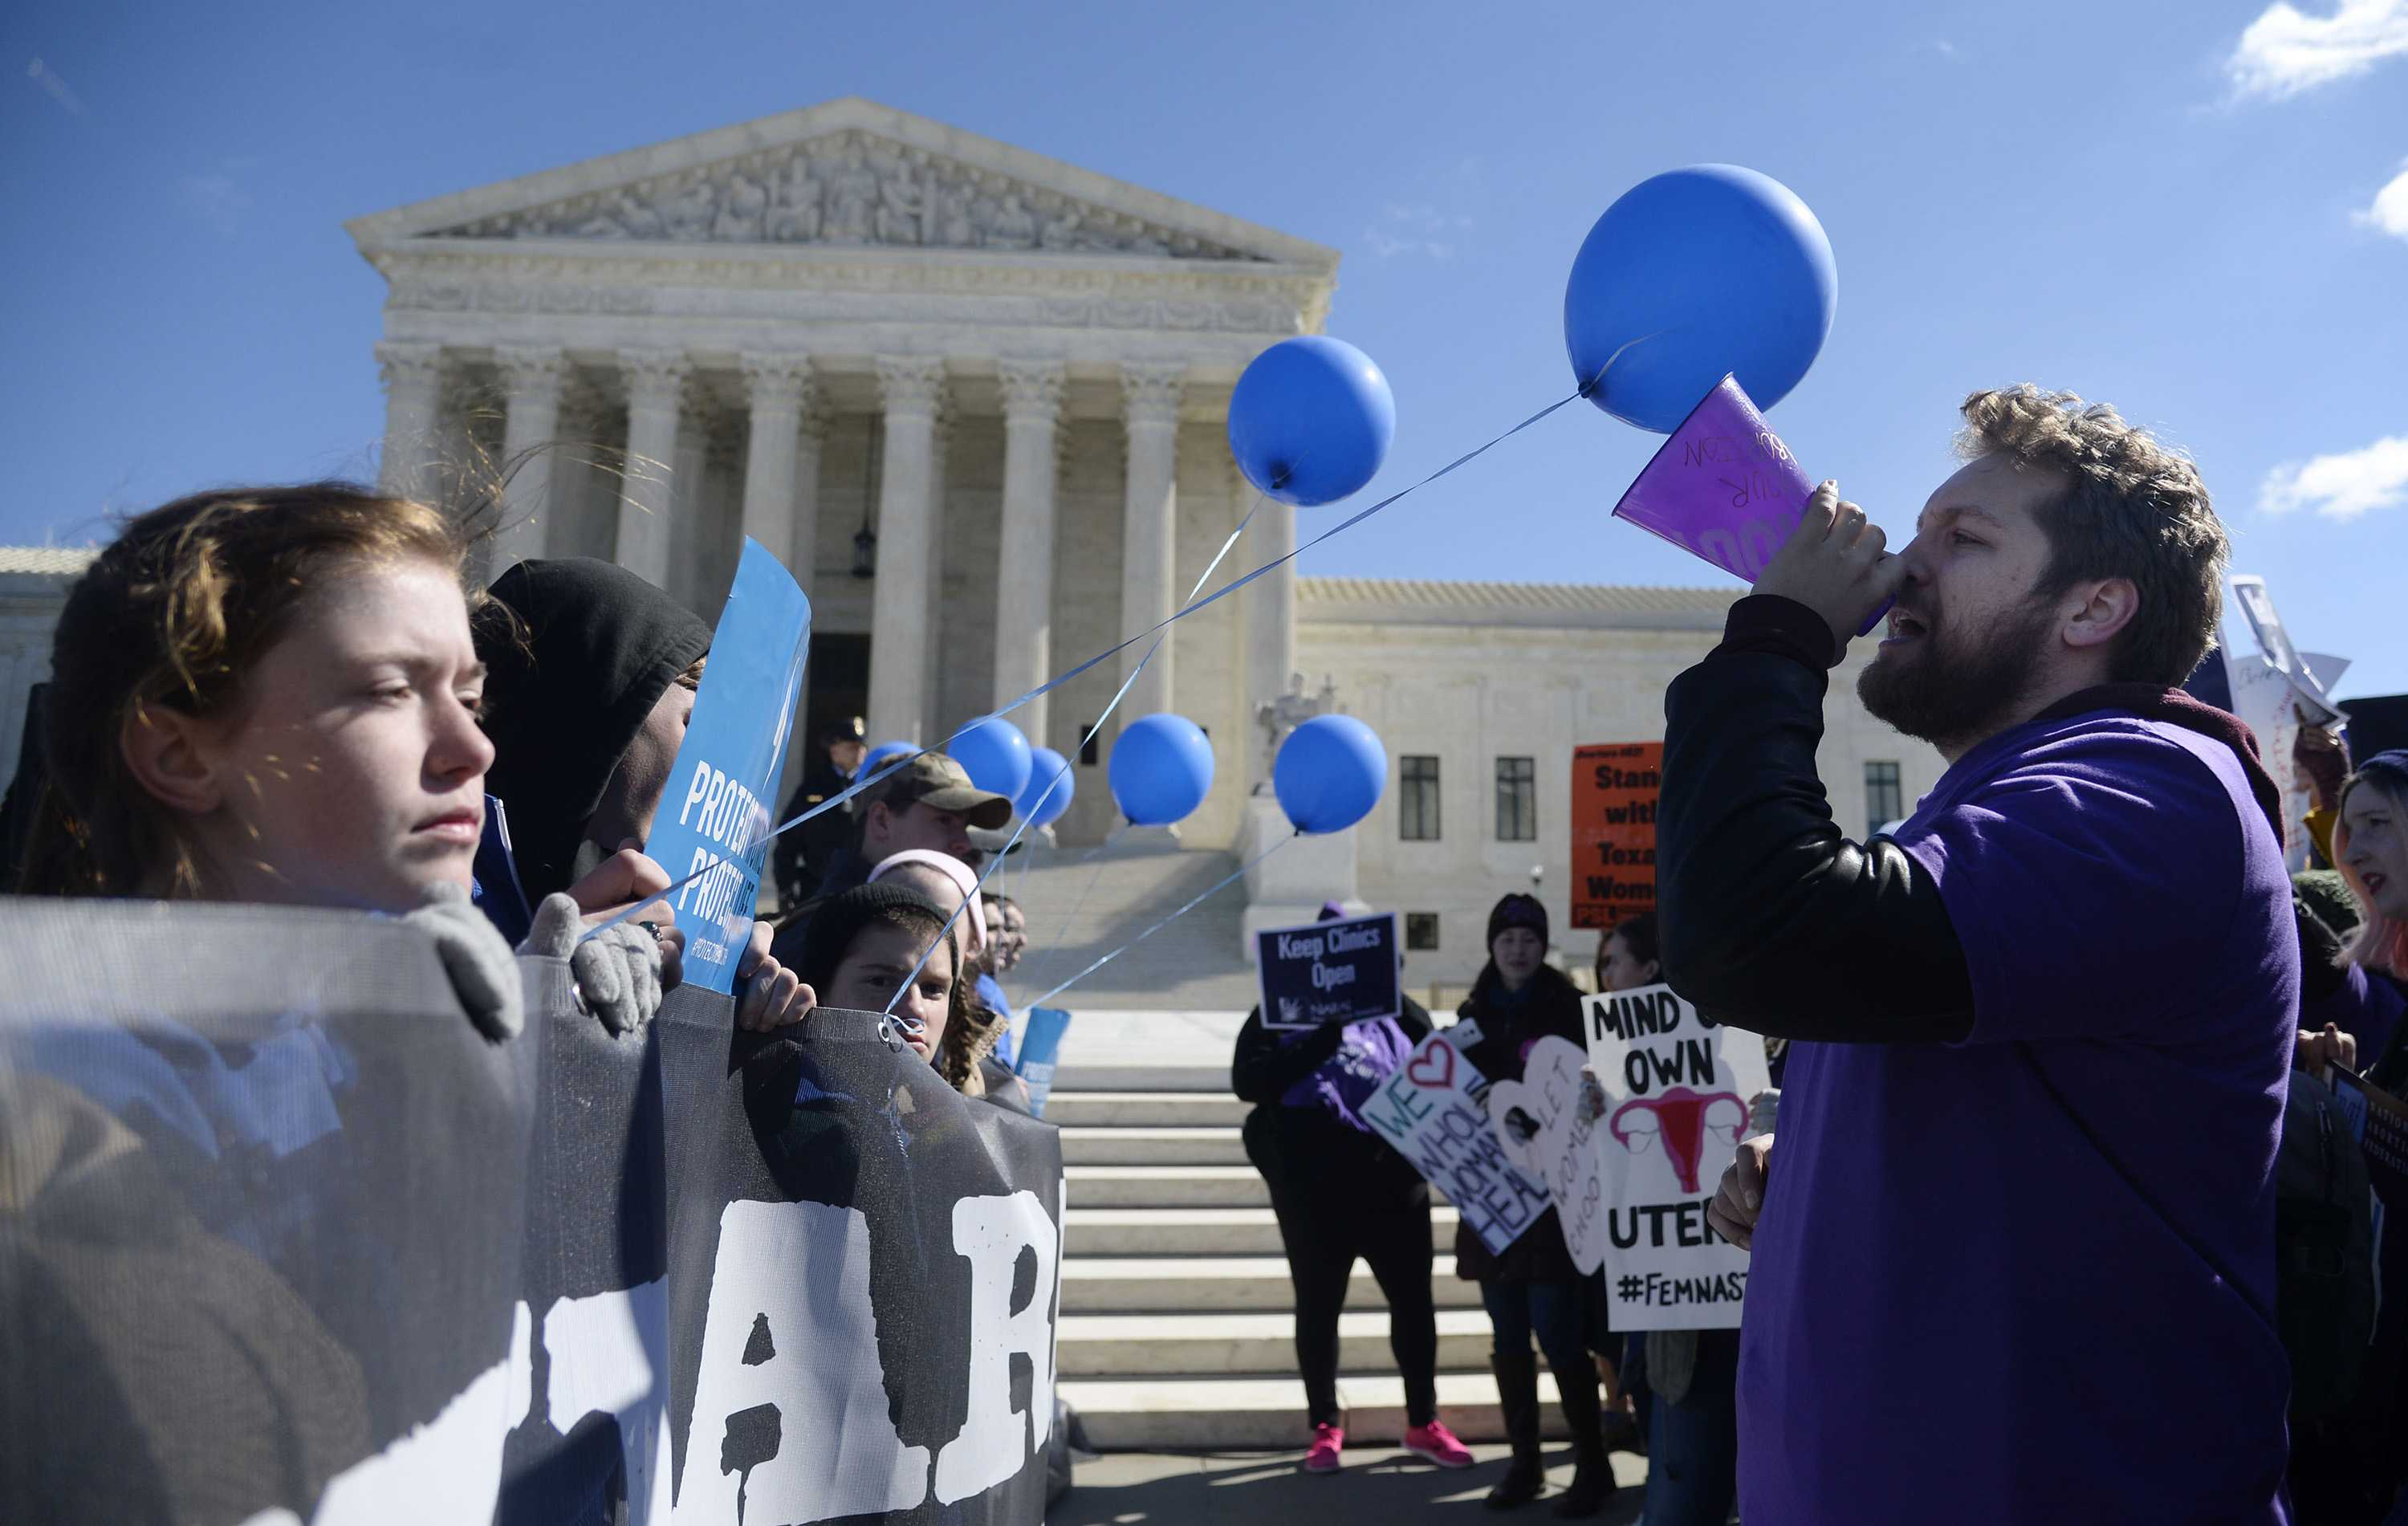 Supporters of legal access to abortion, as well as anti-abortion activists, rally outside the Supreme Court on March 2, 2016, as the Court hears oral arguments in the case of Whole Woman's Health v. Hellerstedt, which deals with access to abortion, in Washington, D.C. (Olivier Douliery/Abaca Press/TNS)